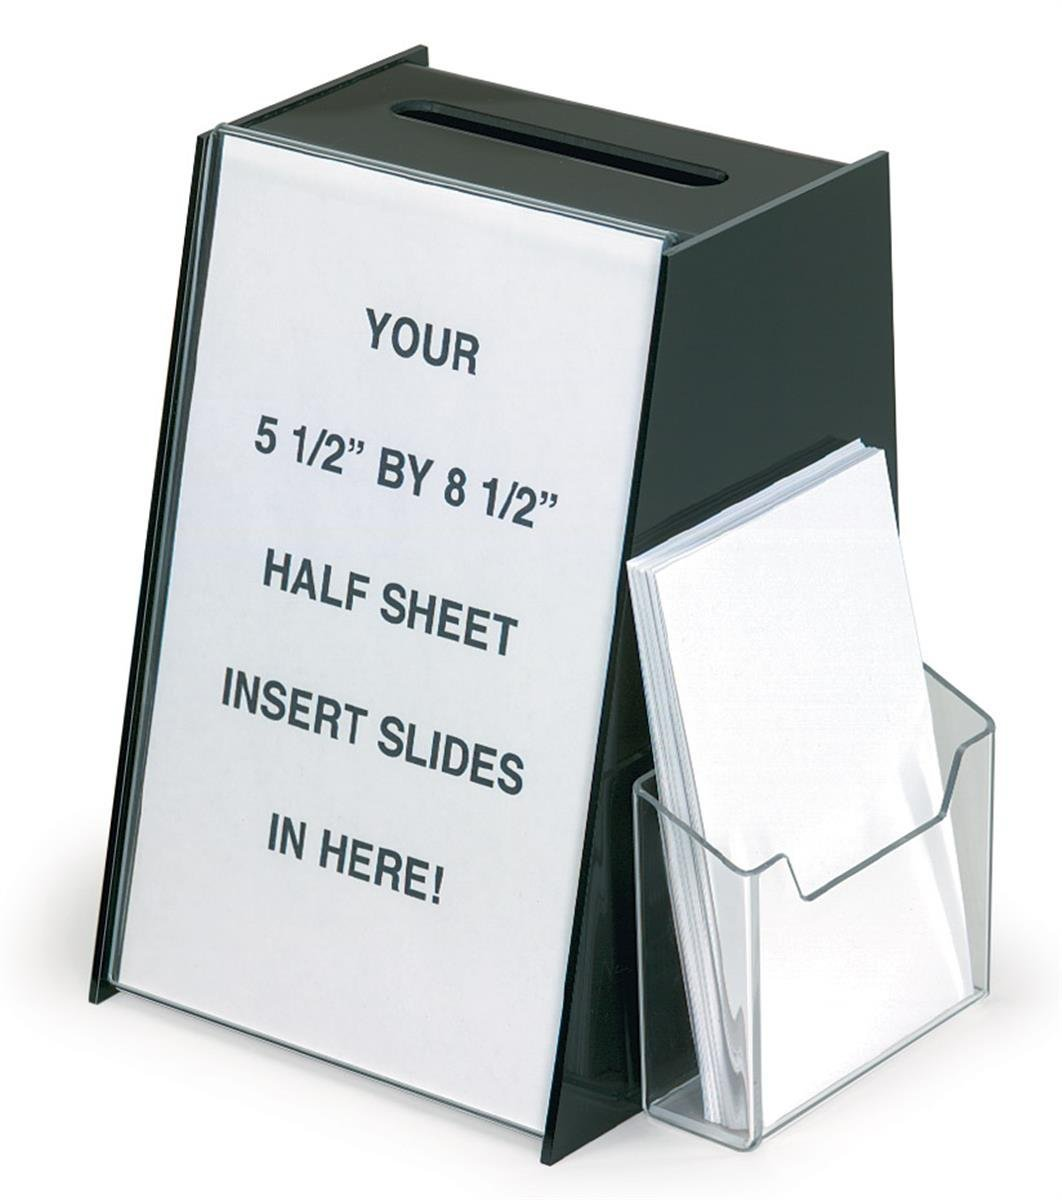 Marketing Holders Acrylic Ballot Box with Holder for 5.5 by 8.5 Inch Sign and a Brochure Pocket - Black (4, 5.5'' x 8.5'')